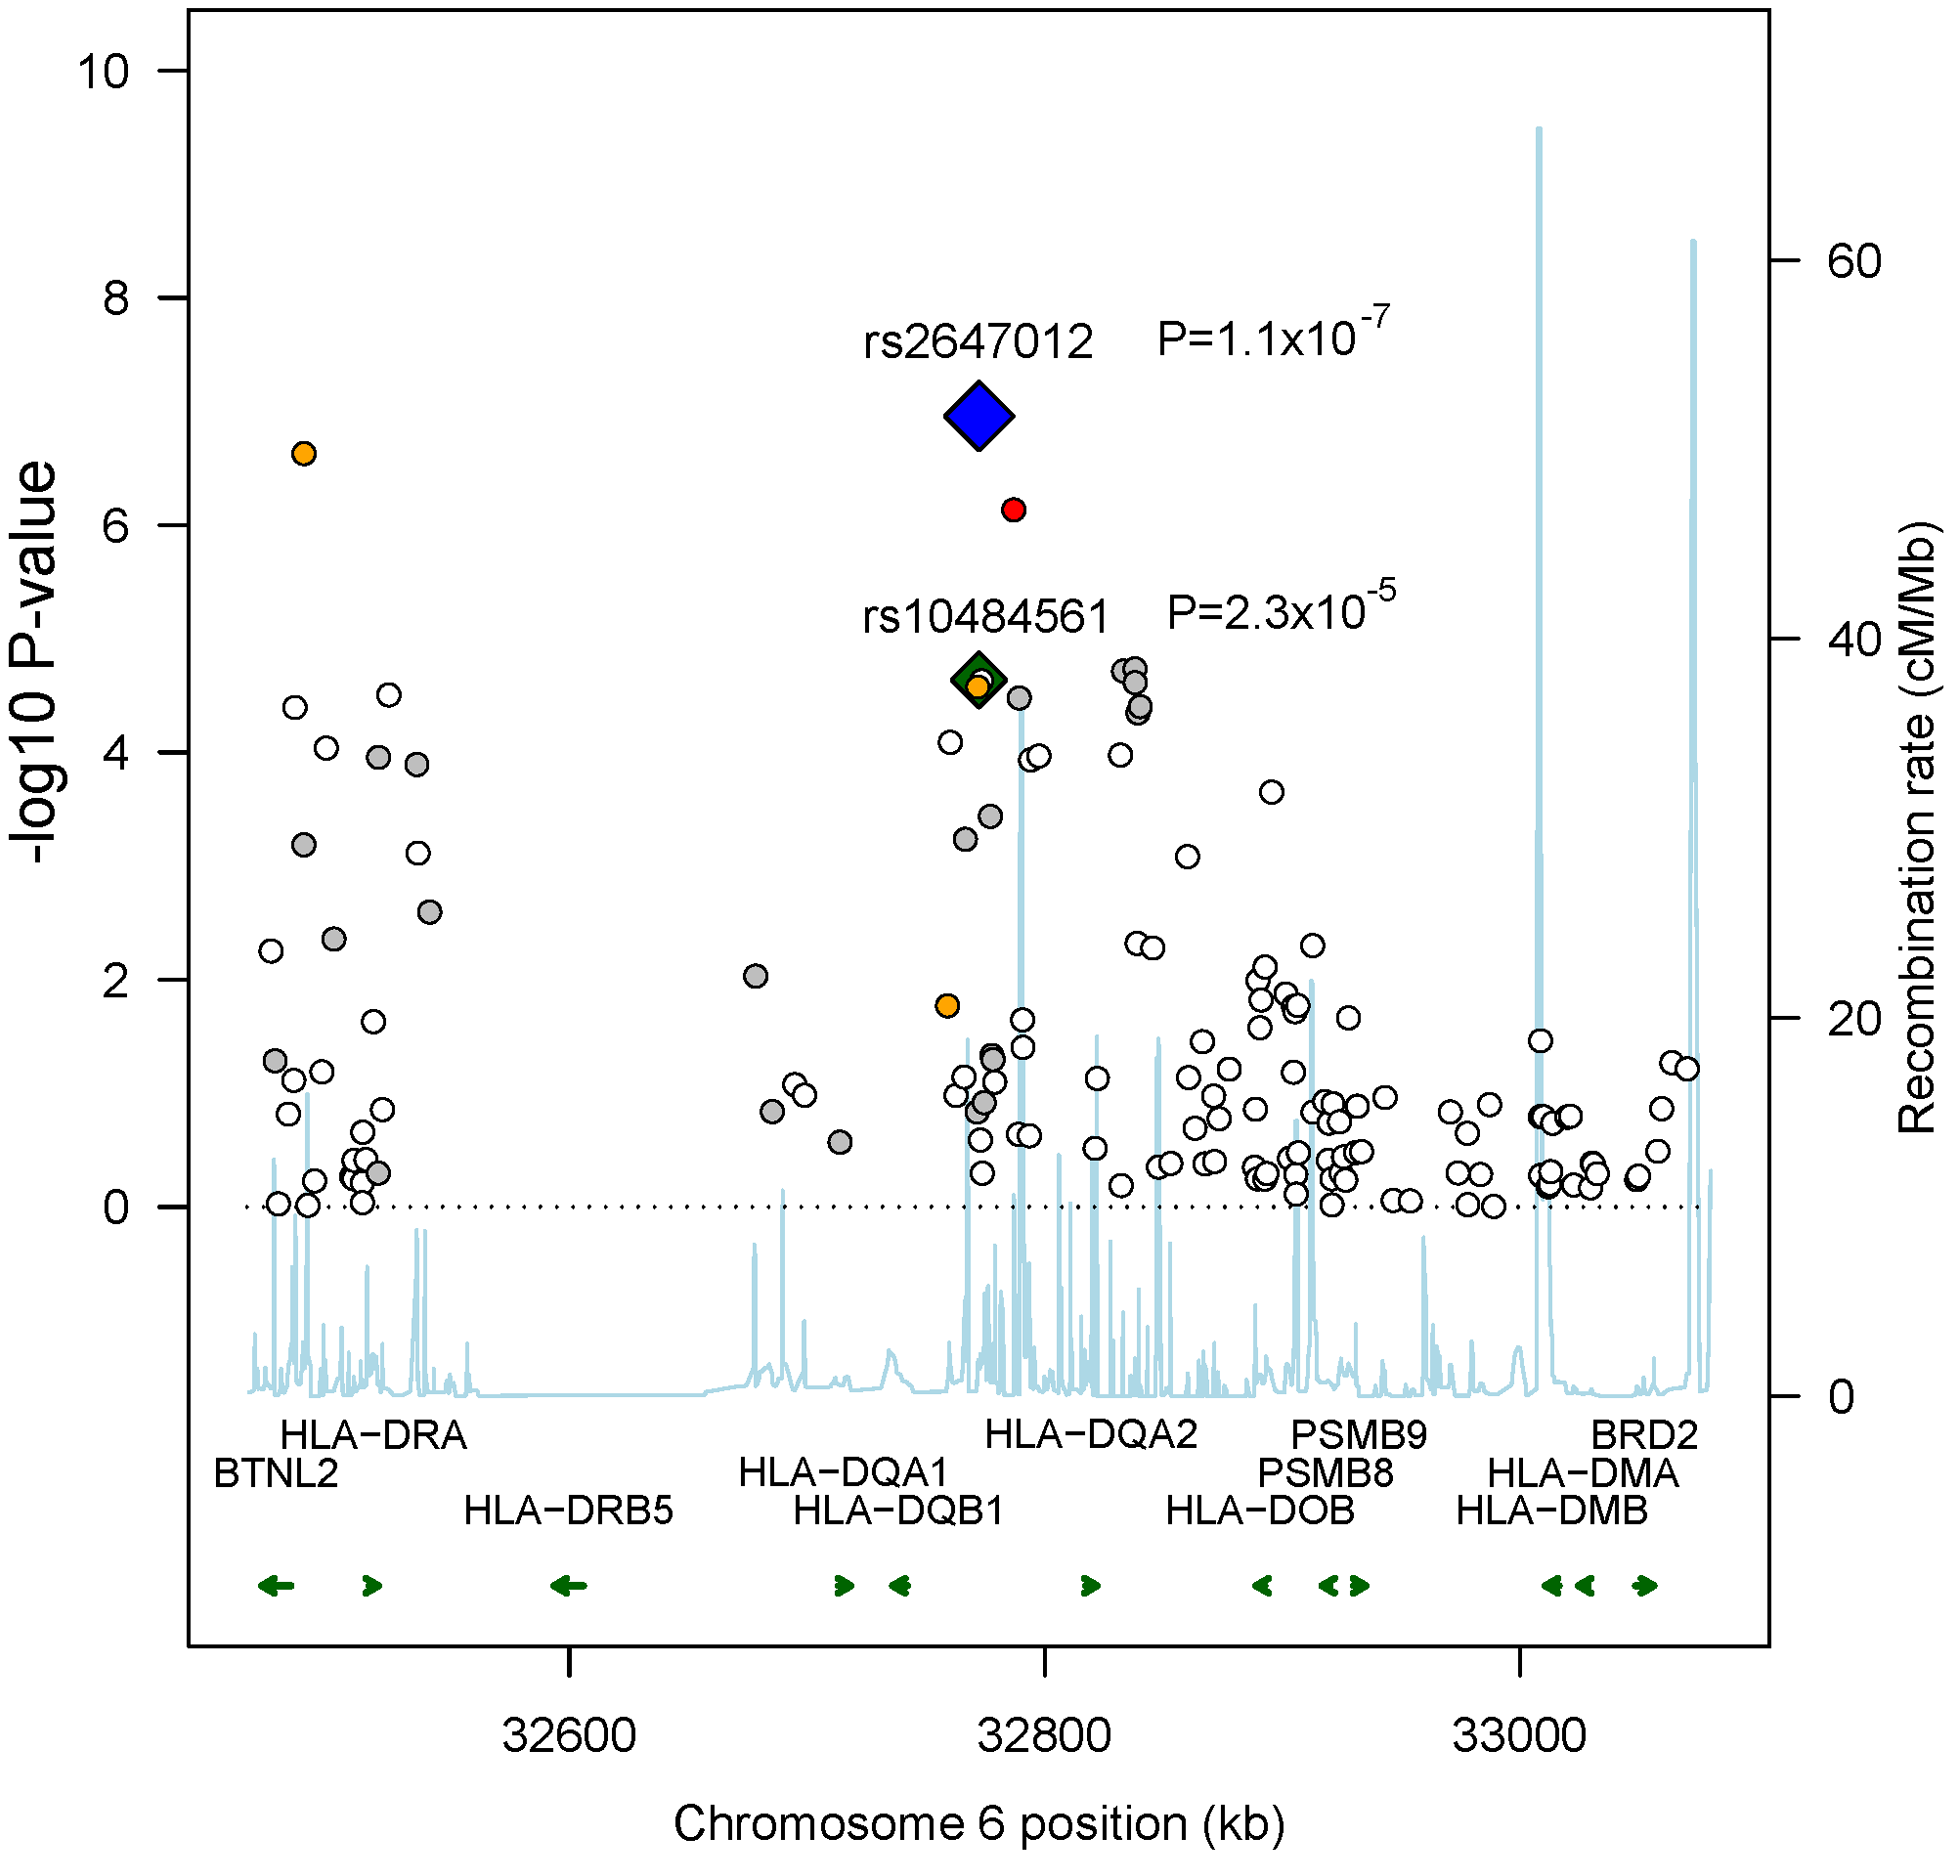 Recombination plot showing associations in 6p21.32 in Stage 1.